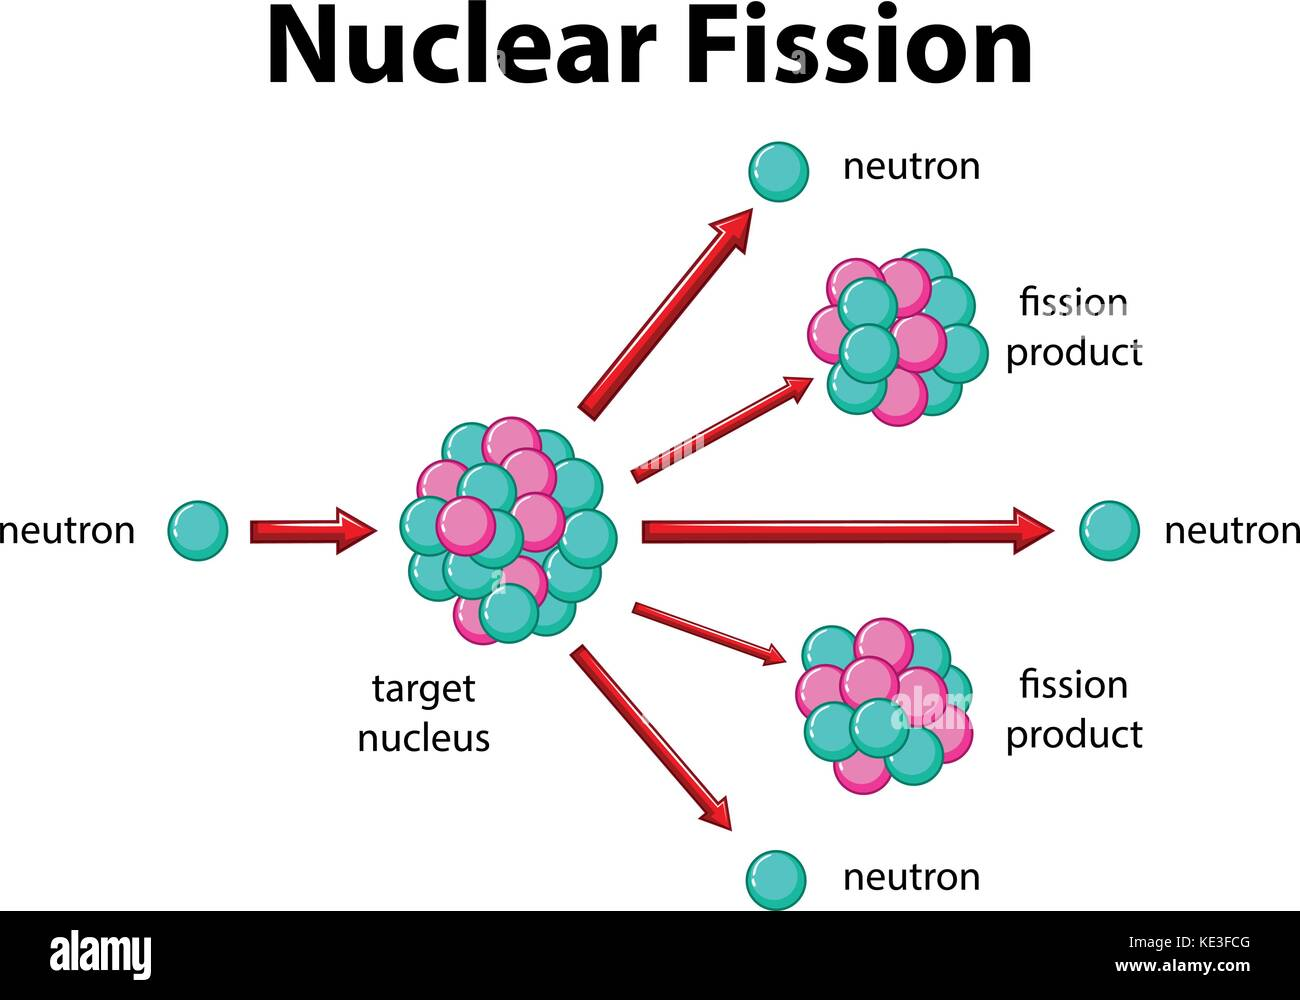 diagram showing nuclear fission illustration stock vector art Nuclear Fission of Uranium 235 diagram showing nuclear fission illustration